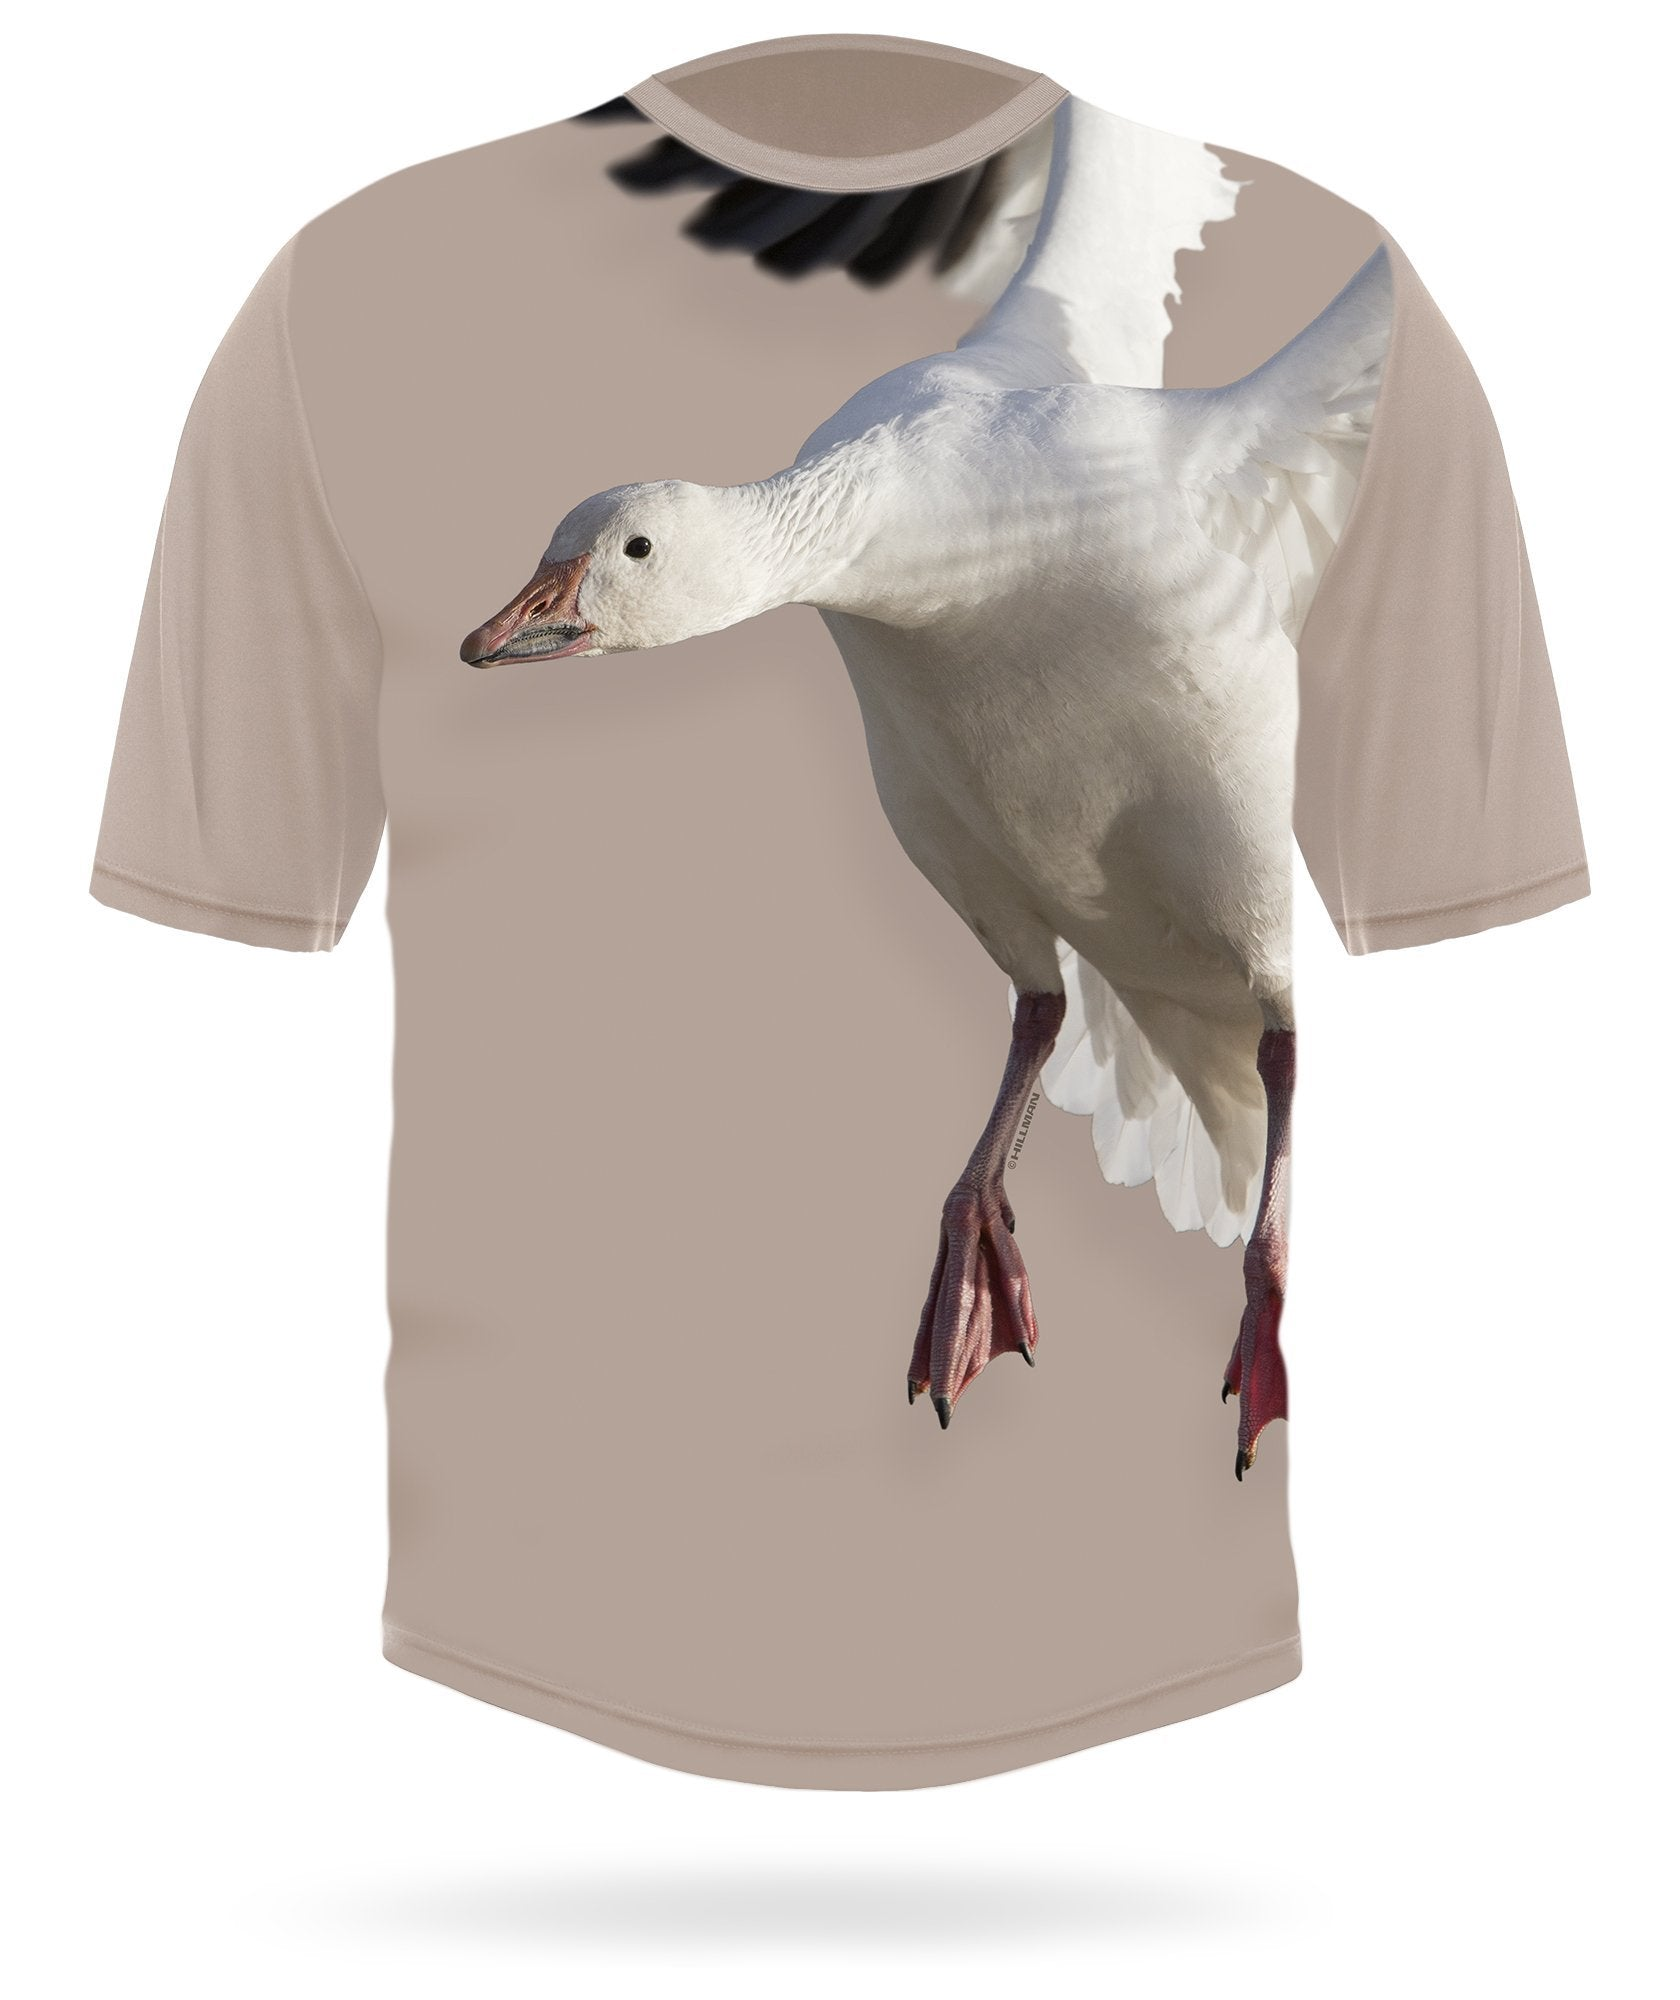 Snow Goose T-shirt short sleeve - HILLMAN® hunting gear